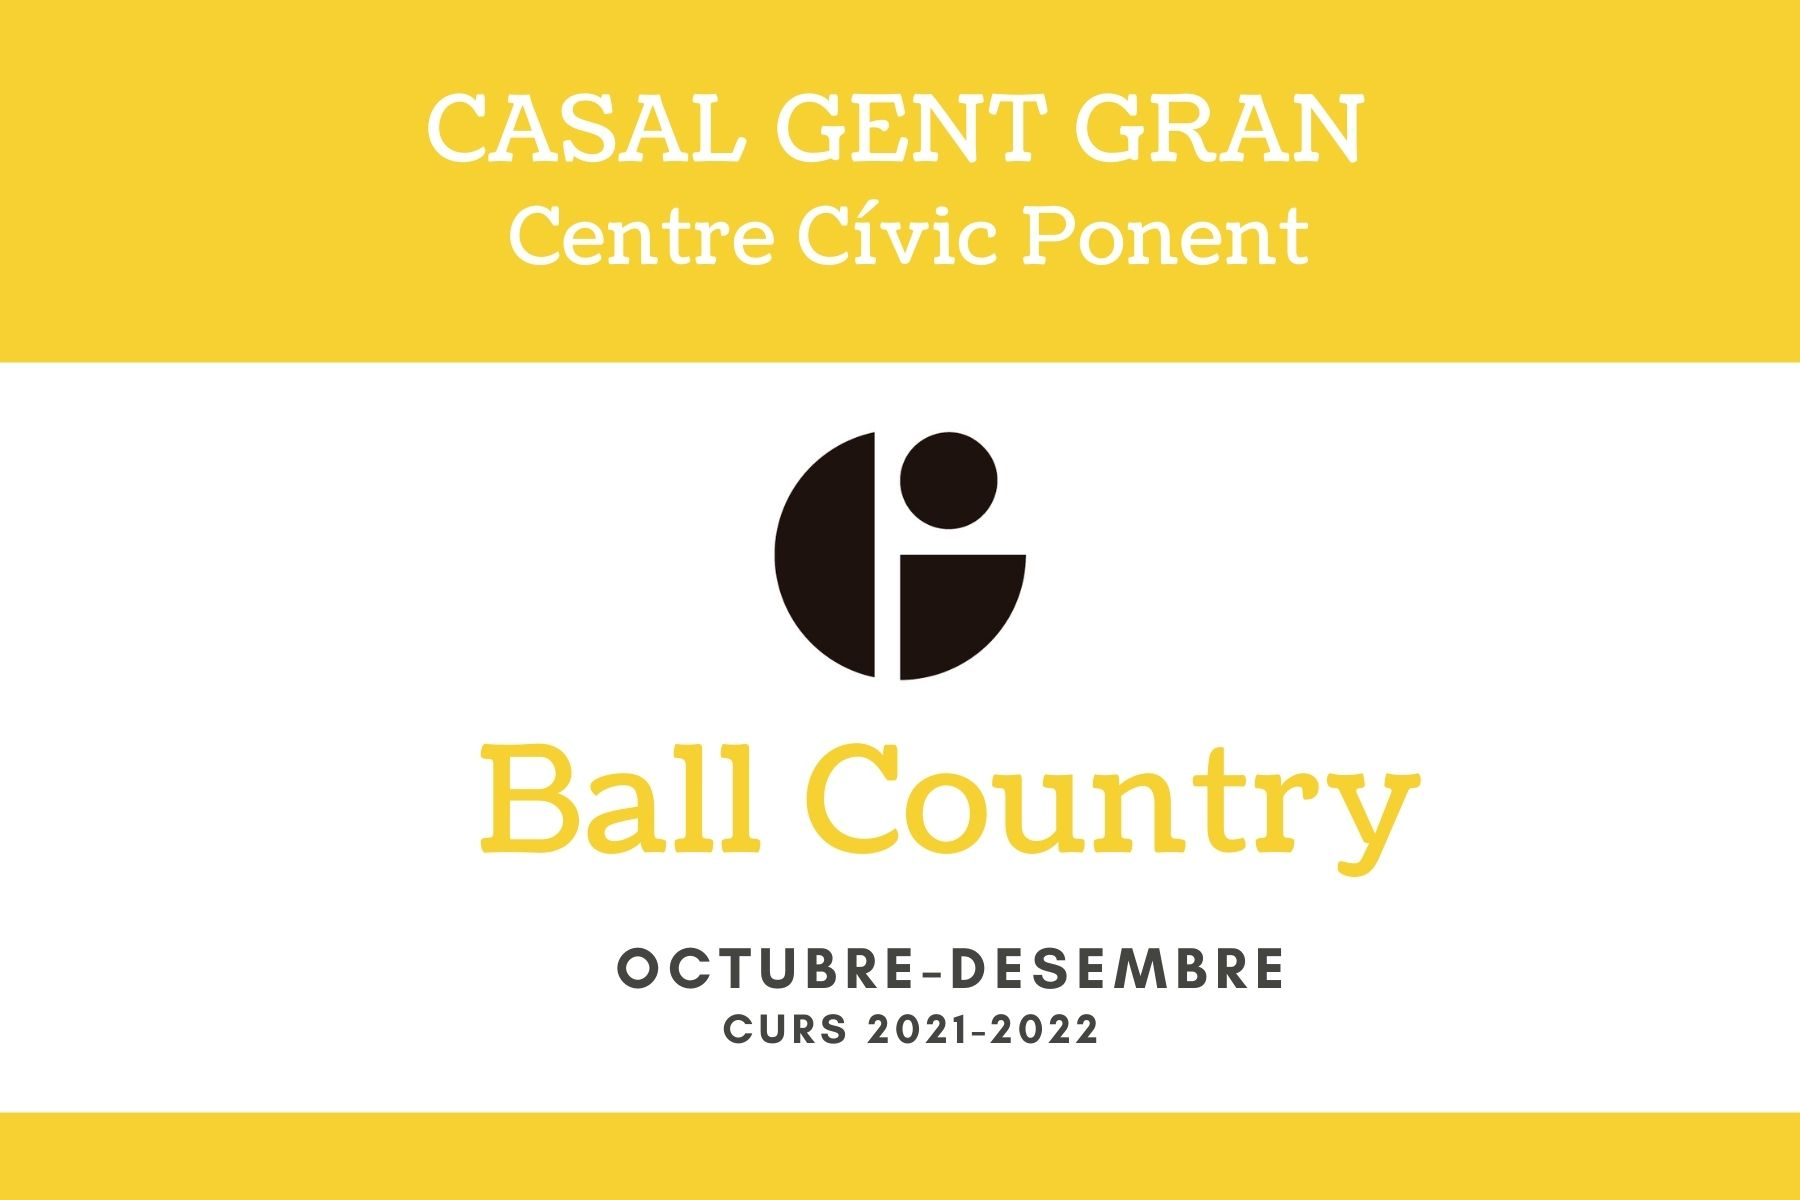 Ball Country-Casal Gent Gran-C.C.Ponent